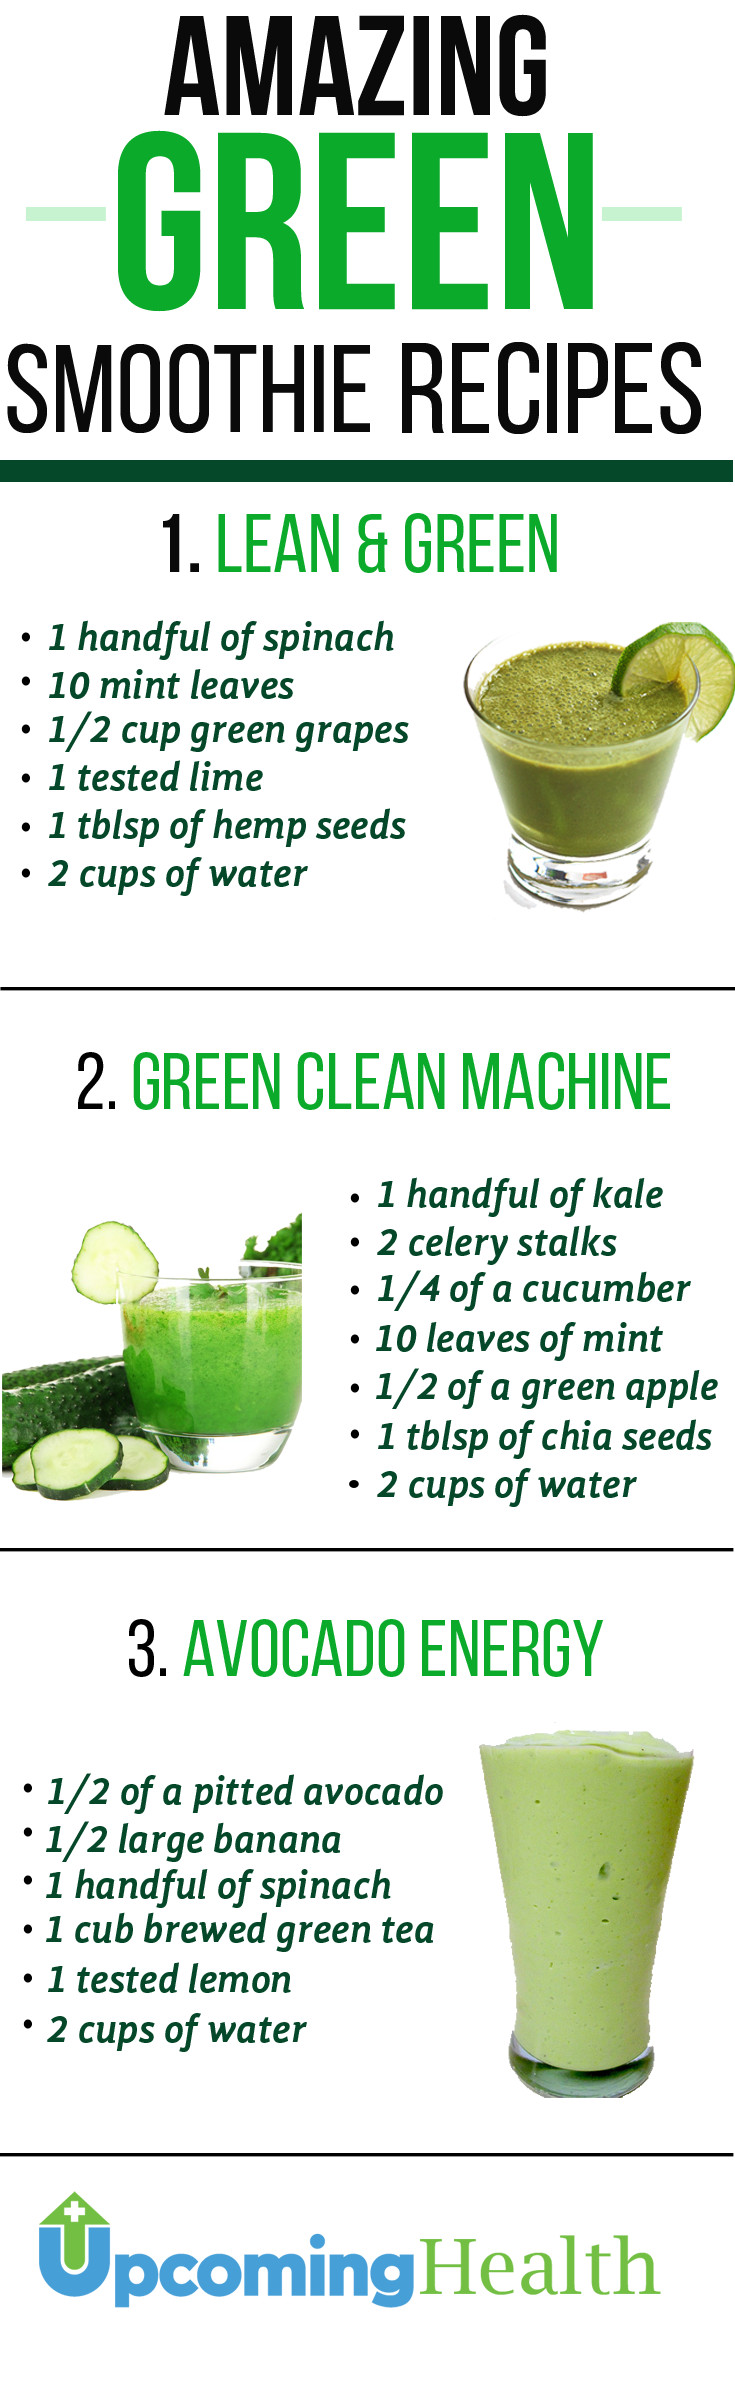 Green Smoothies Recipes  Green Smoothies Will Revolutionize Your Health